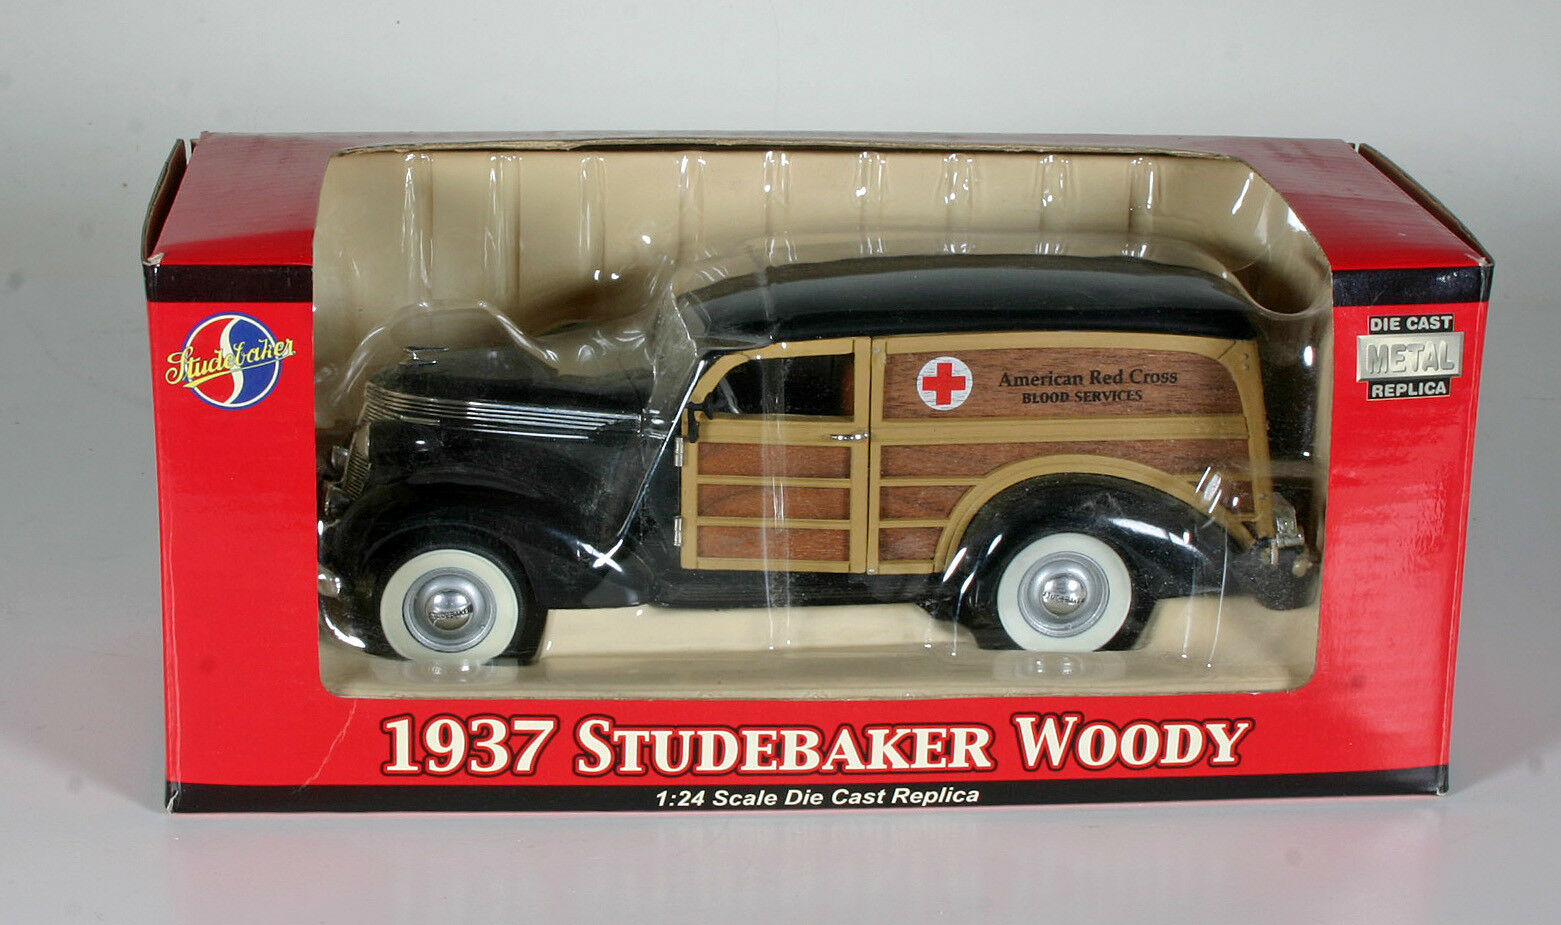 Red Cross Toy 1937 Studebaker Woody - New with original box